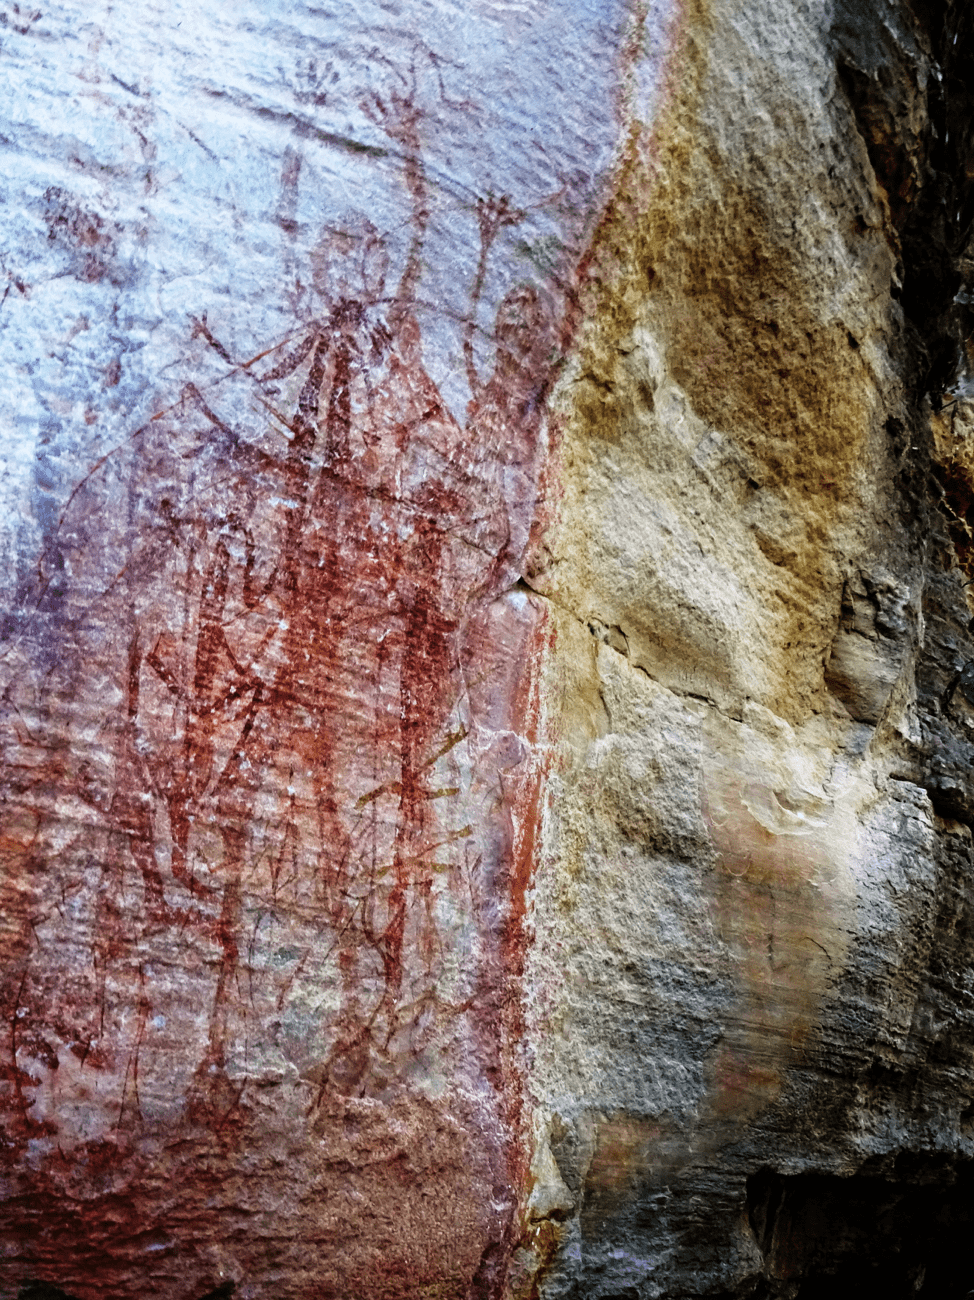 Aboriginal rock art depicting a communal celebration